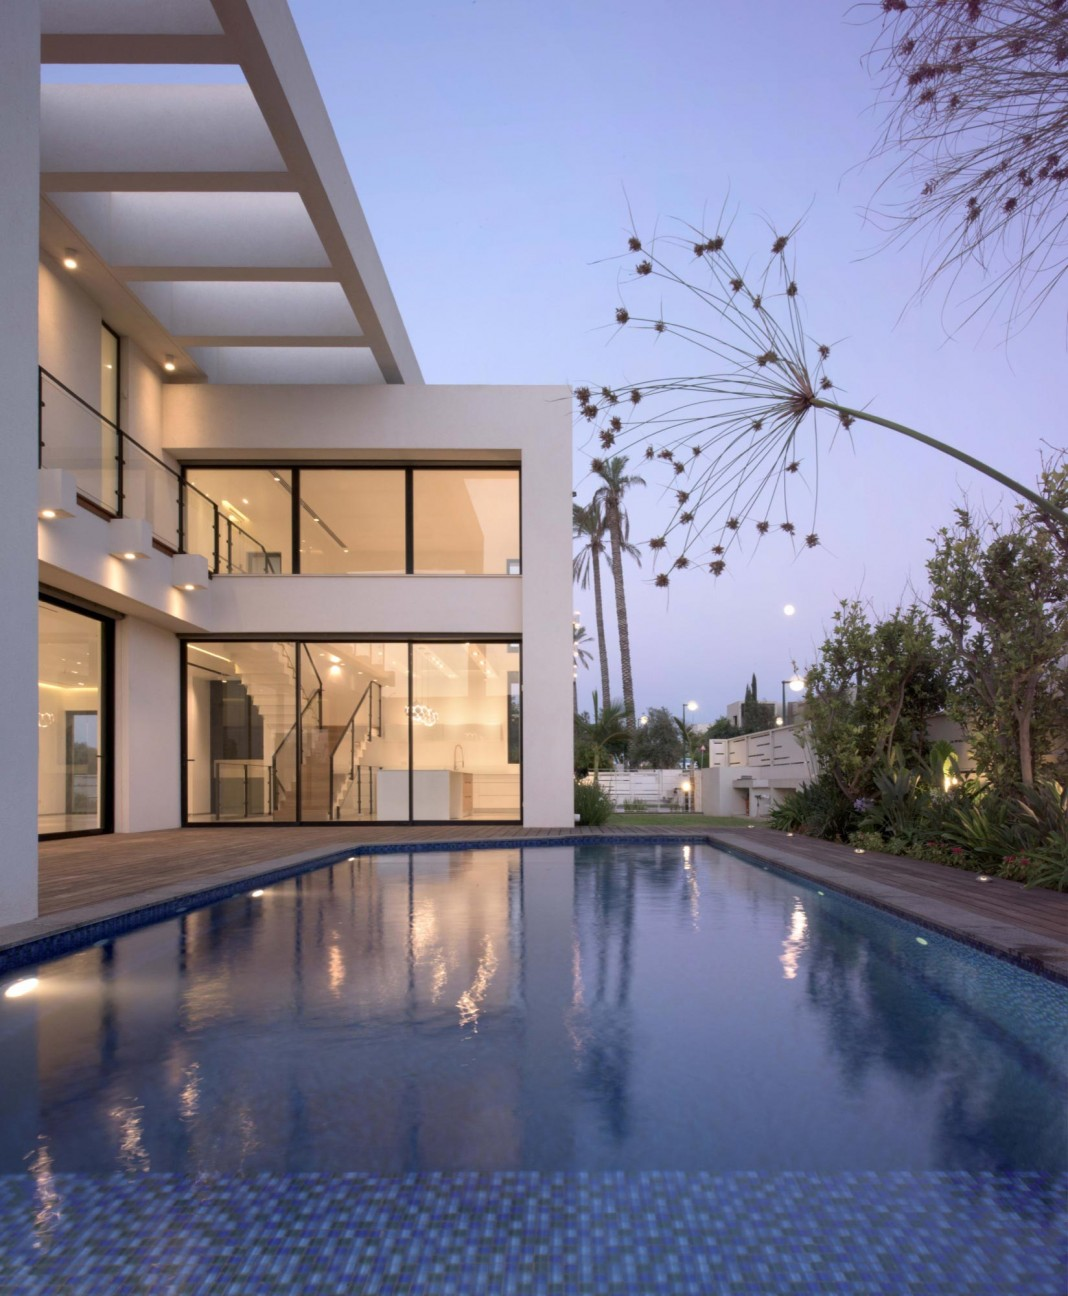 House N near the old roman city of Caesarea by Israel Nottes Architects